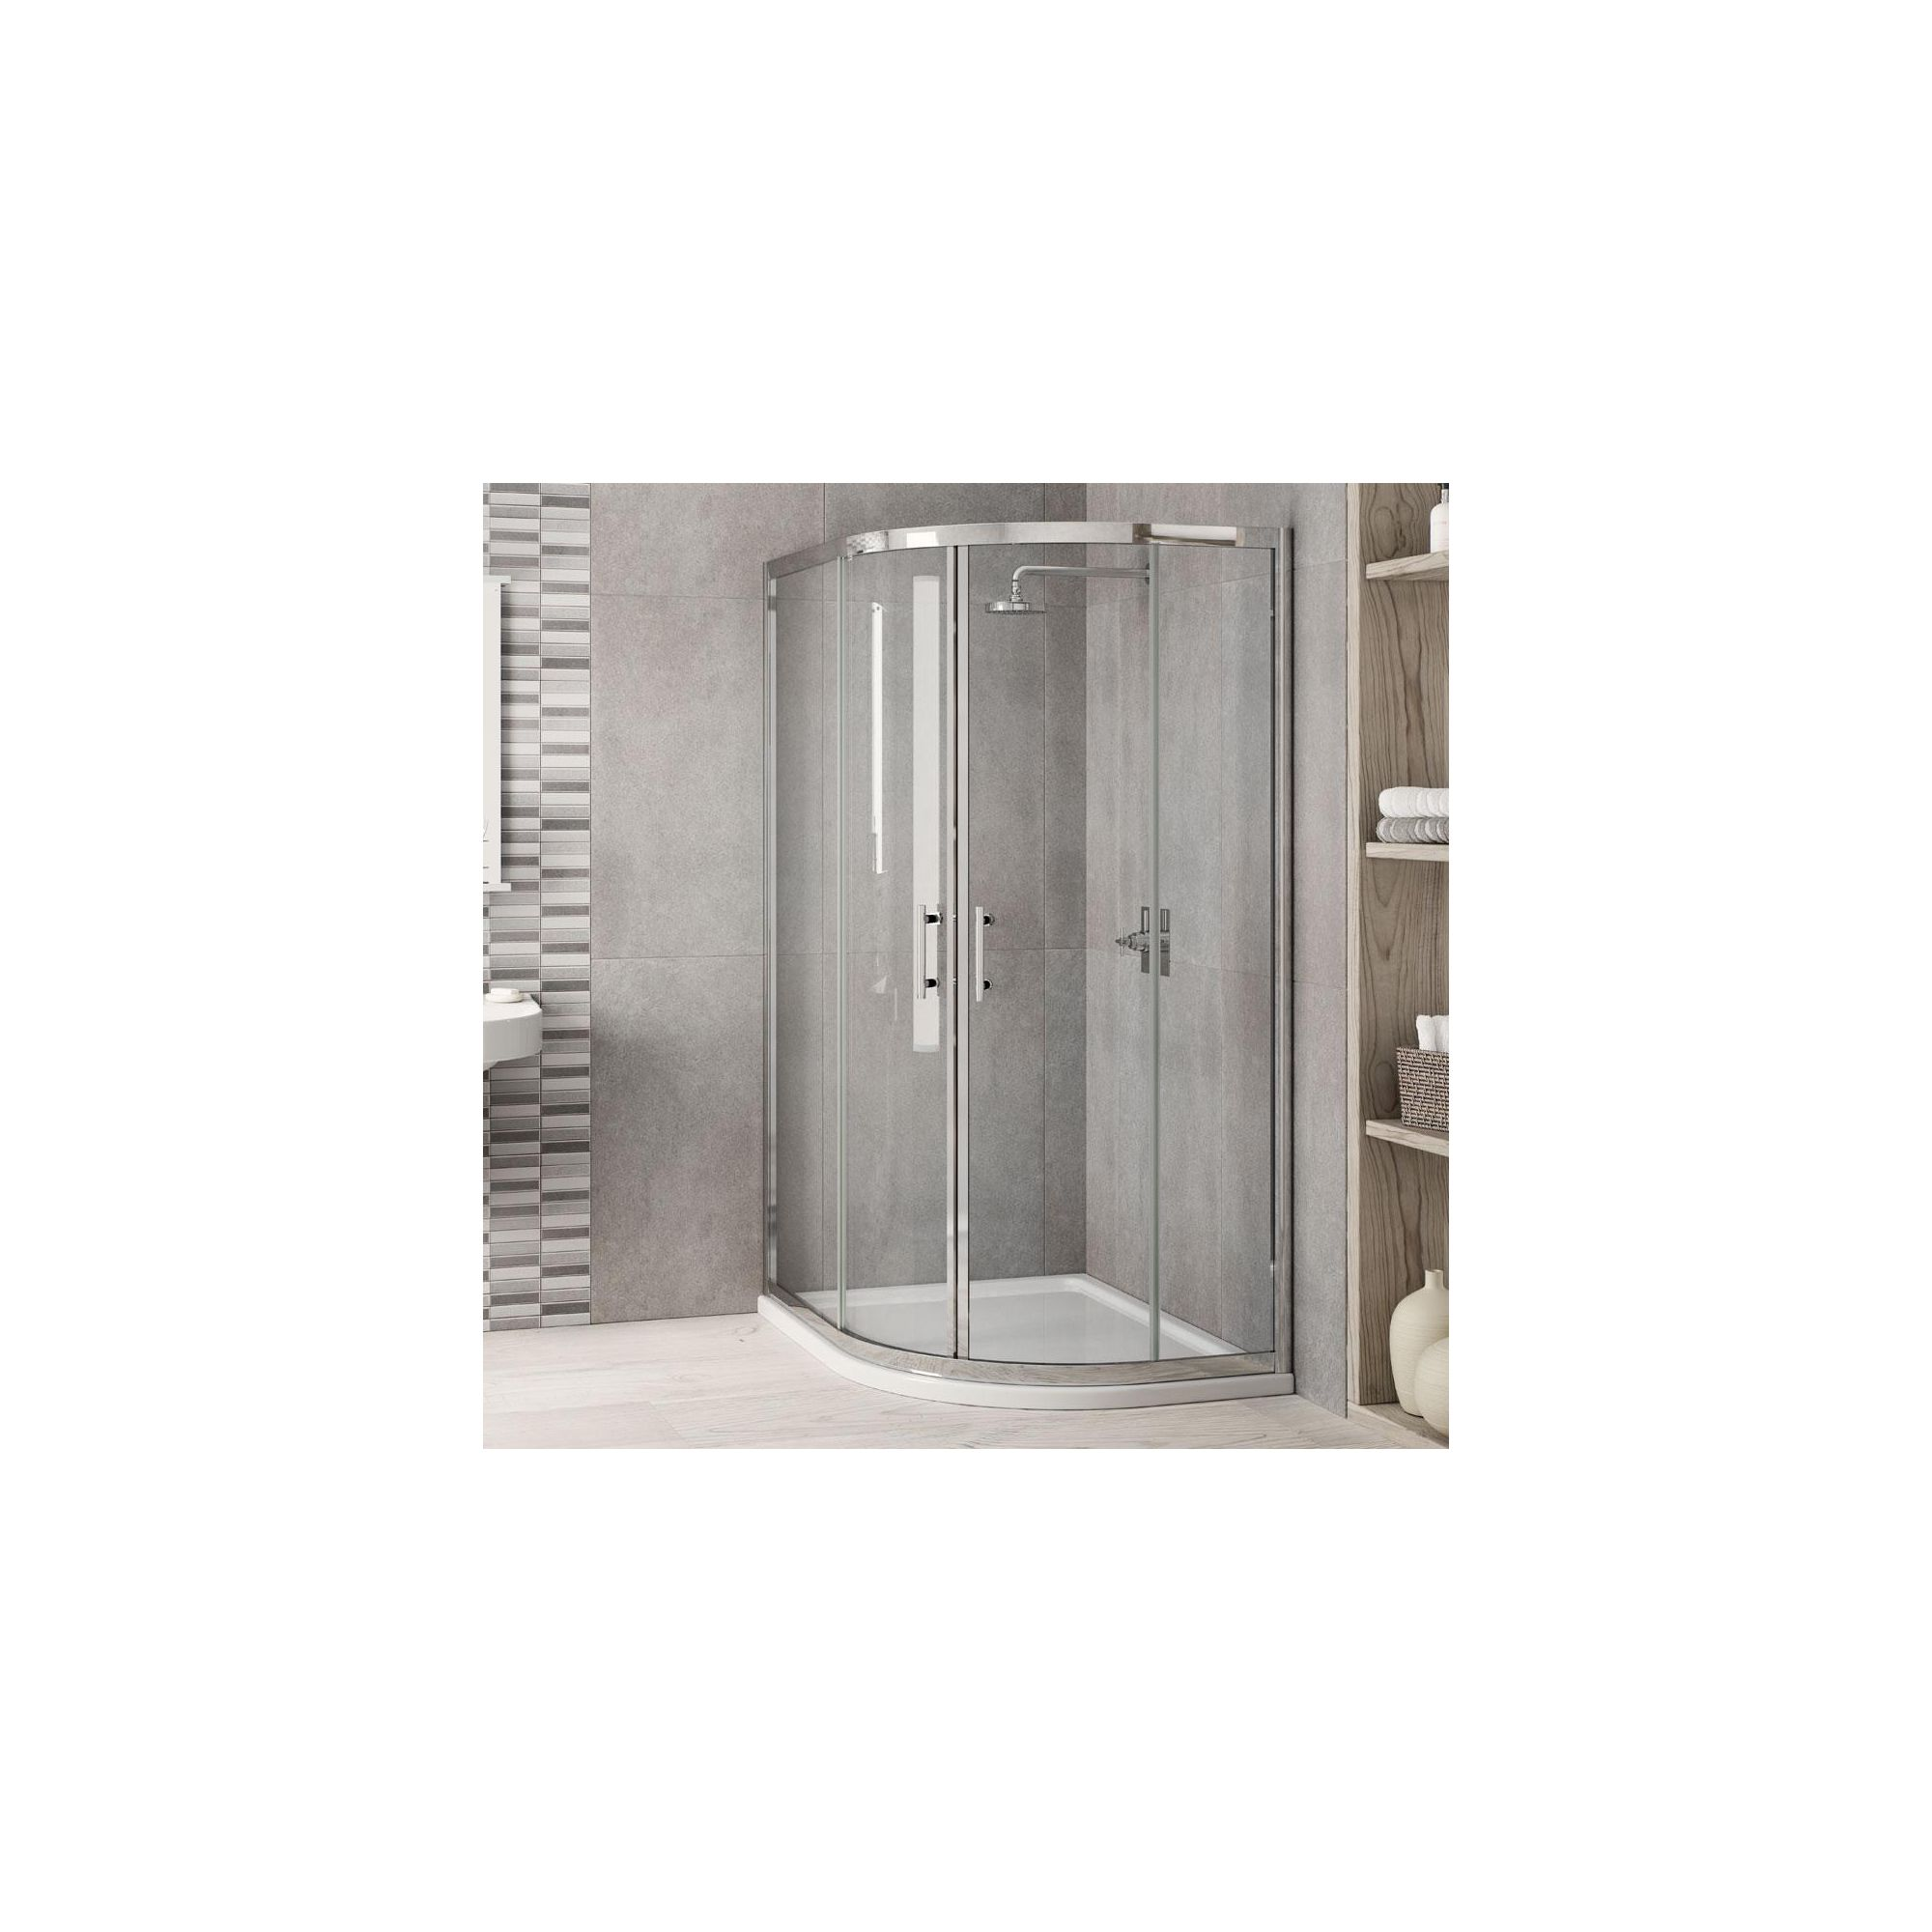 Elemis Inspire Offset Quadrant Shower Enclosure, 1000mm x 800mm, 6mm Glass, Low Profile Tray, Left Handed at Tesco Direct